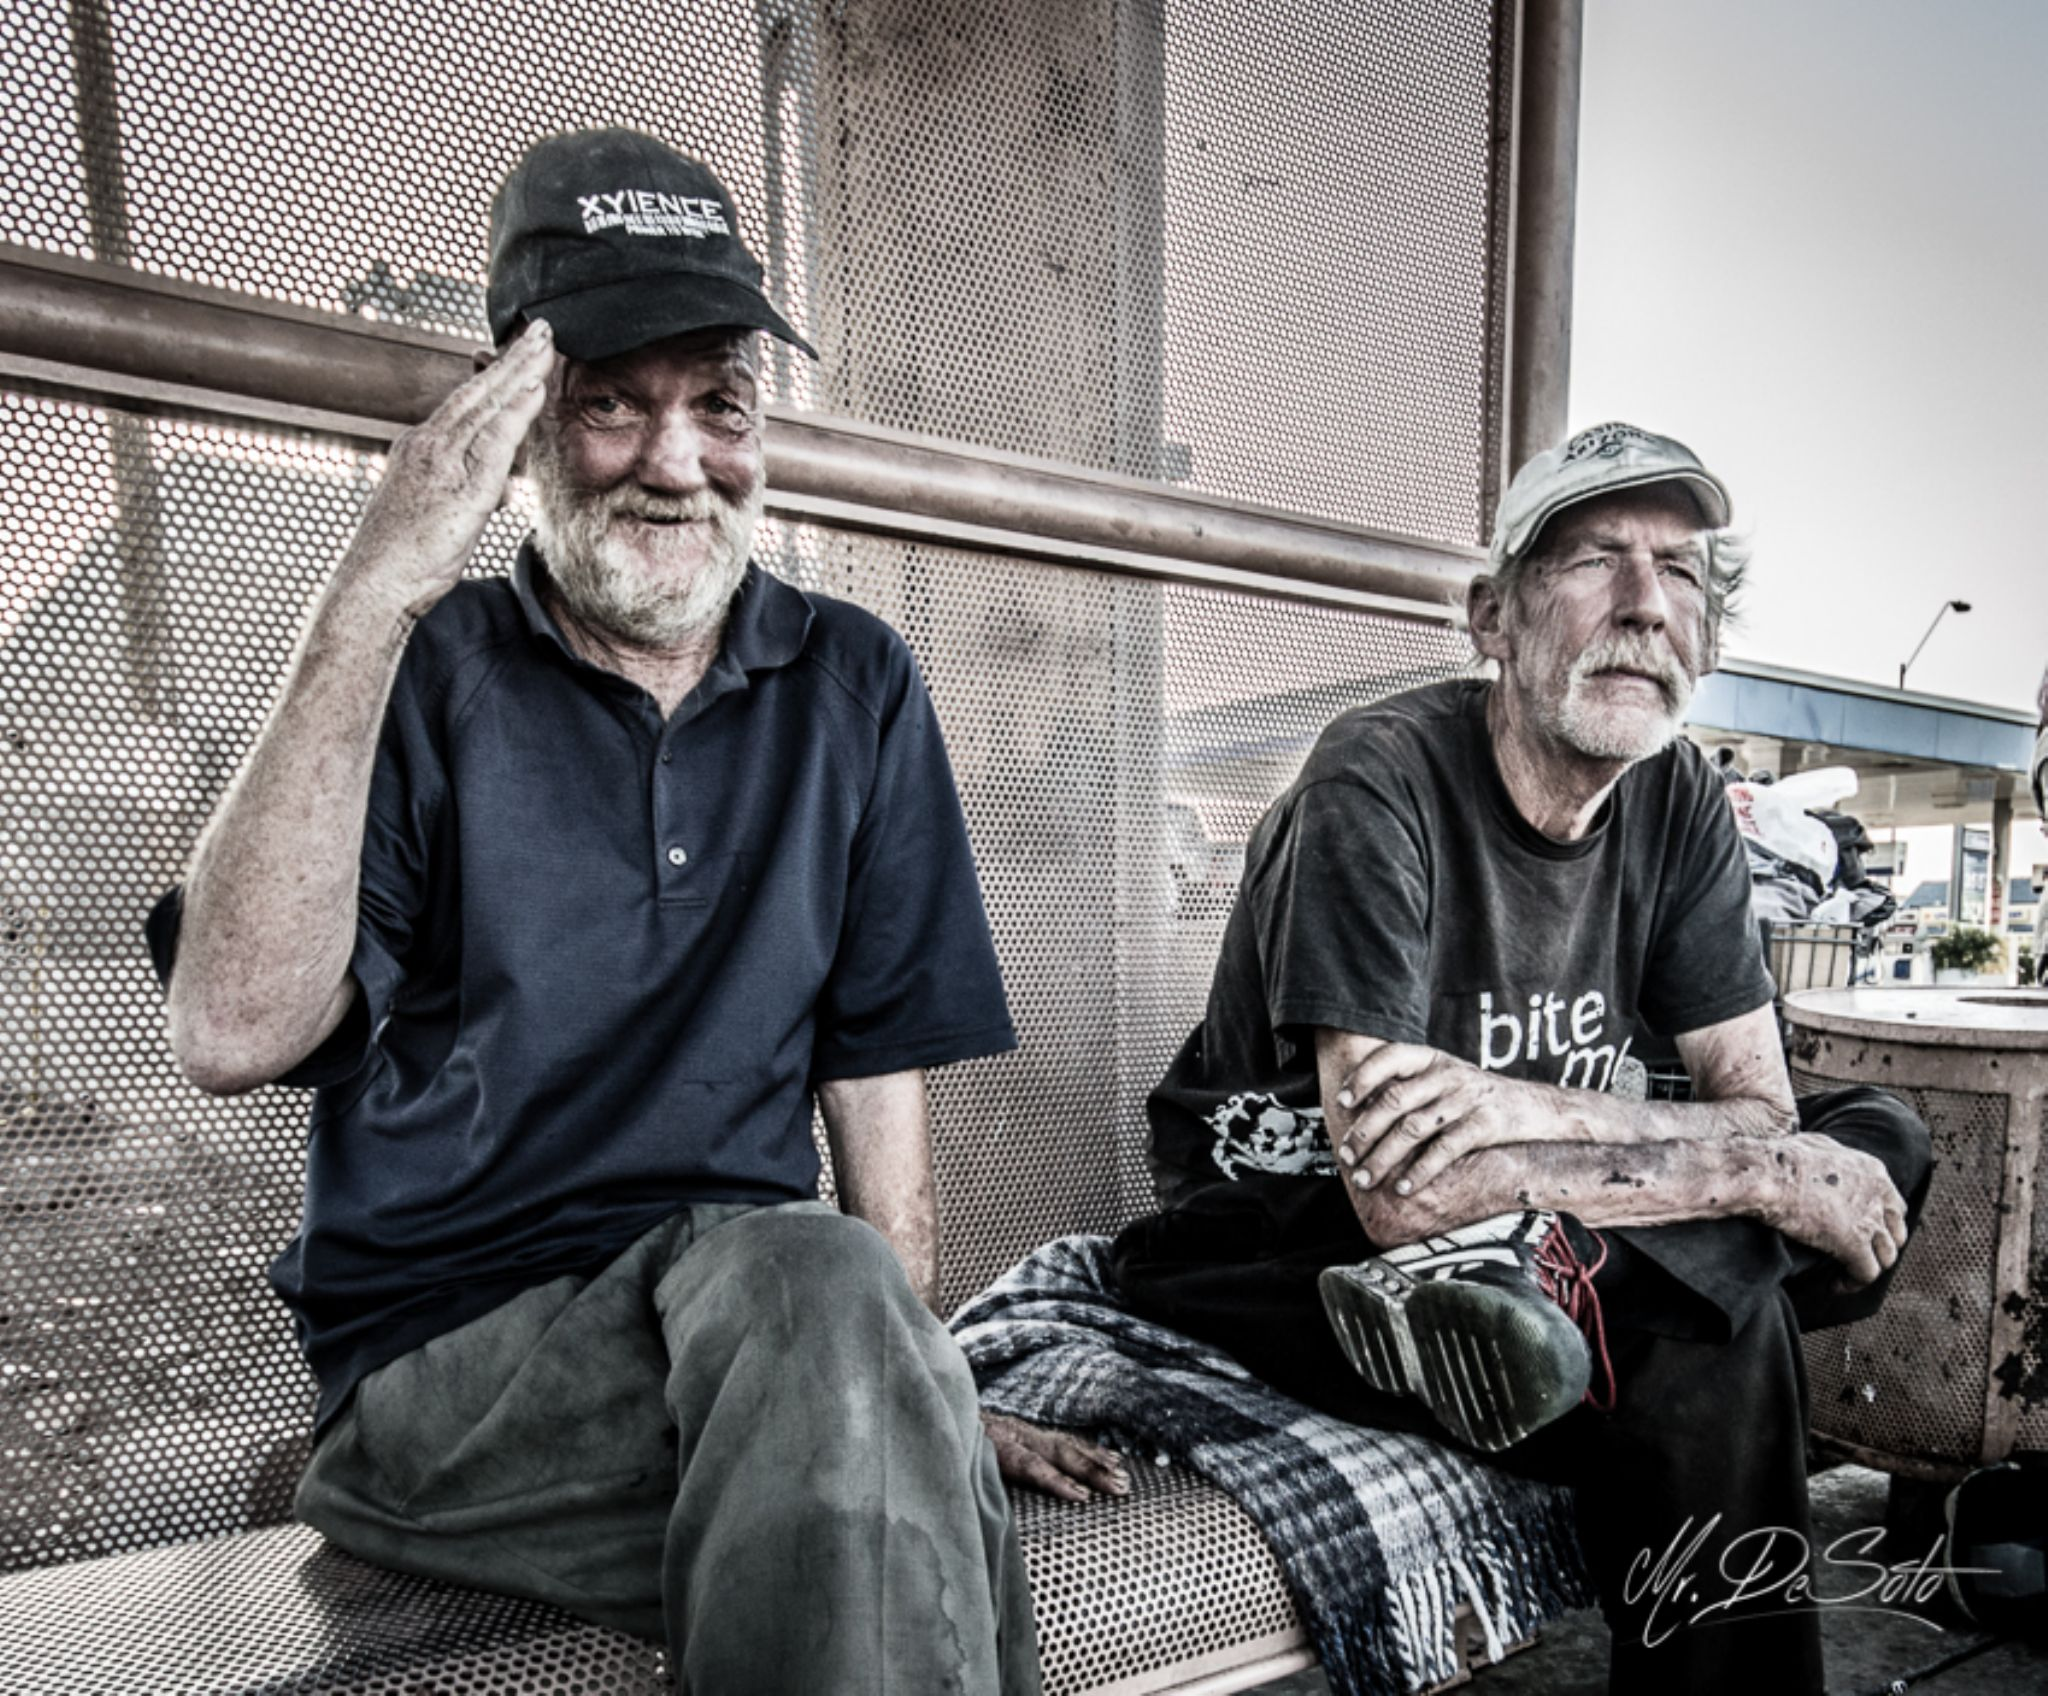 Meet Lt. Dan and Tim by Mr. DeSoto Photography